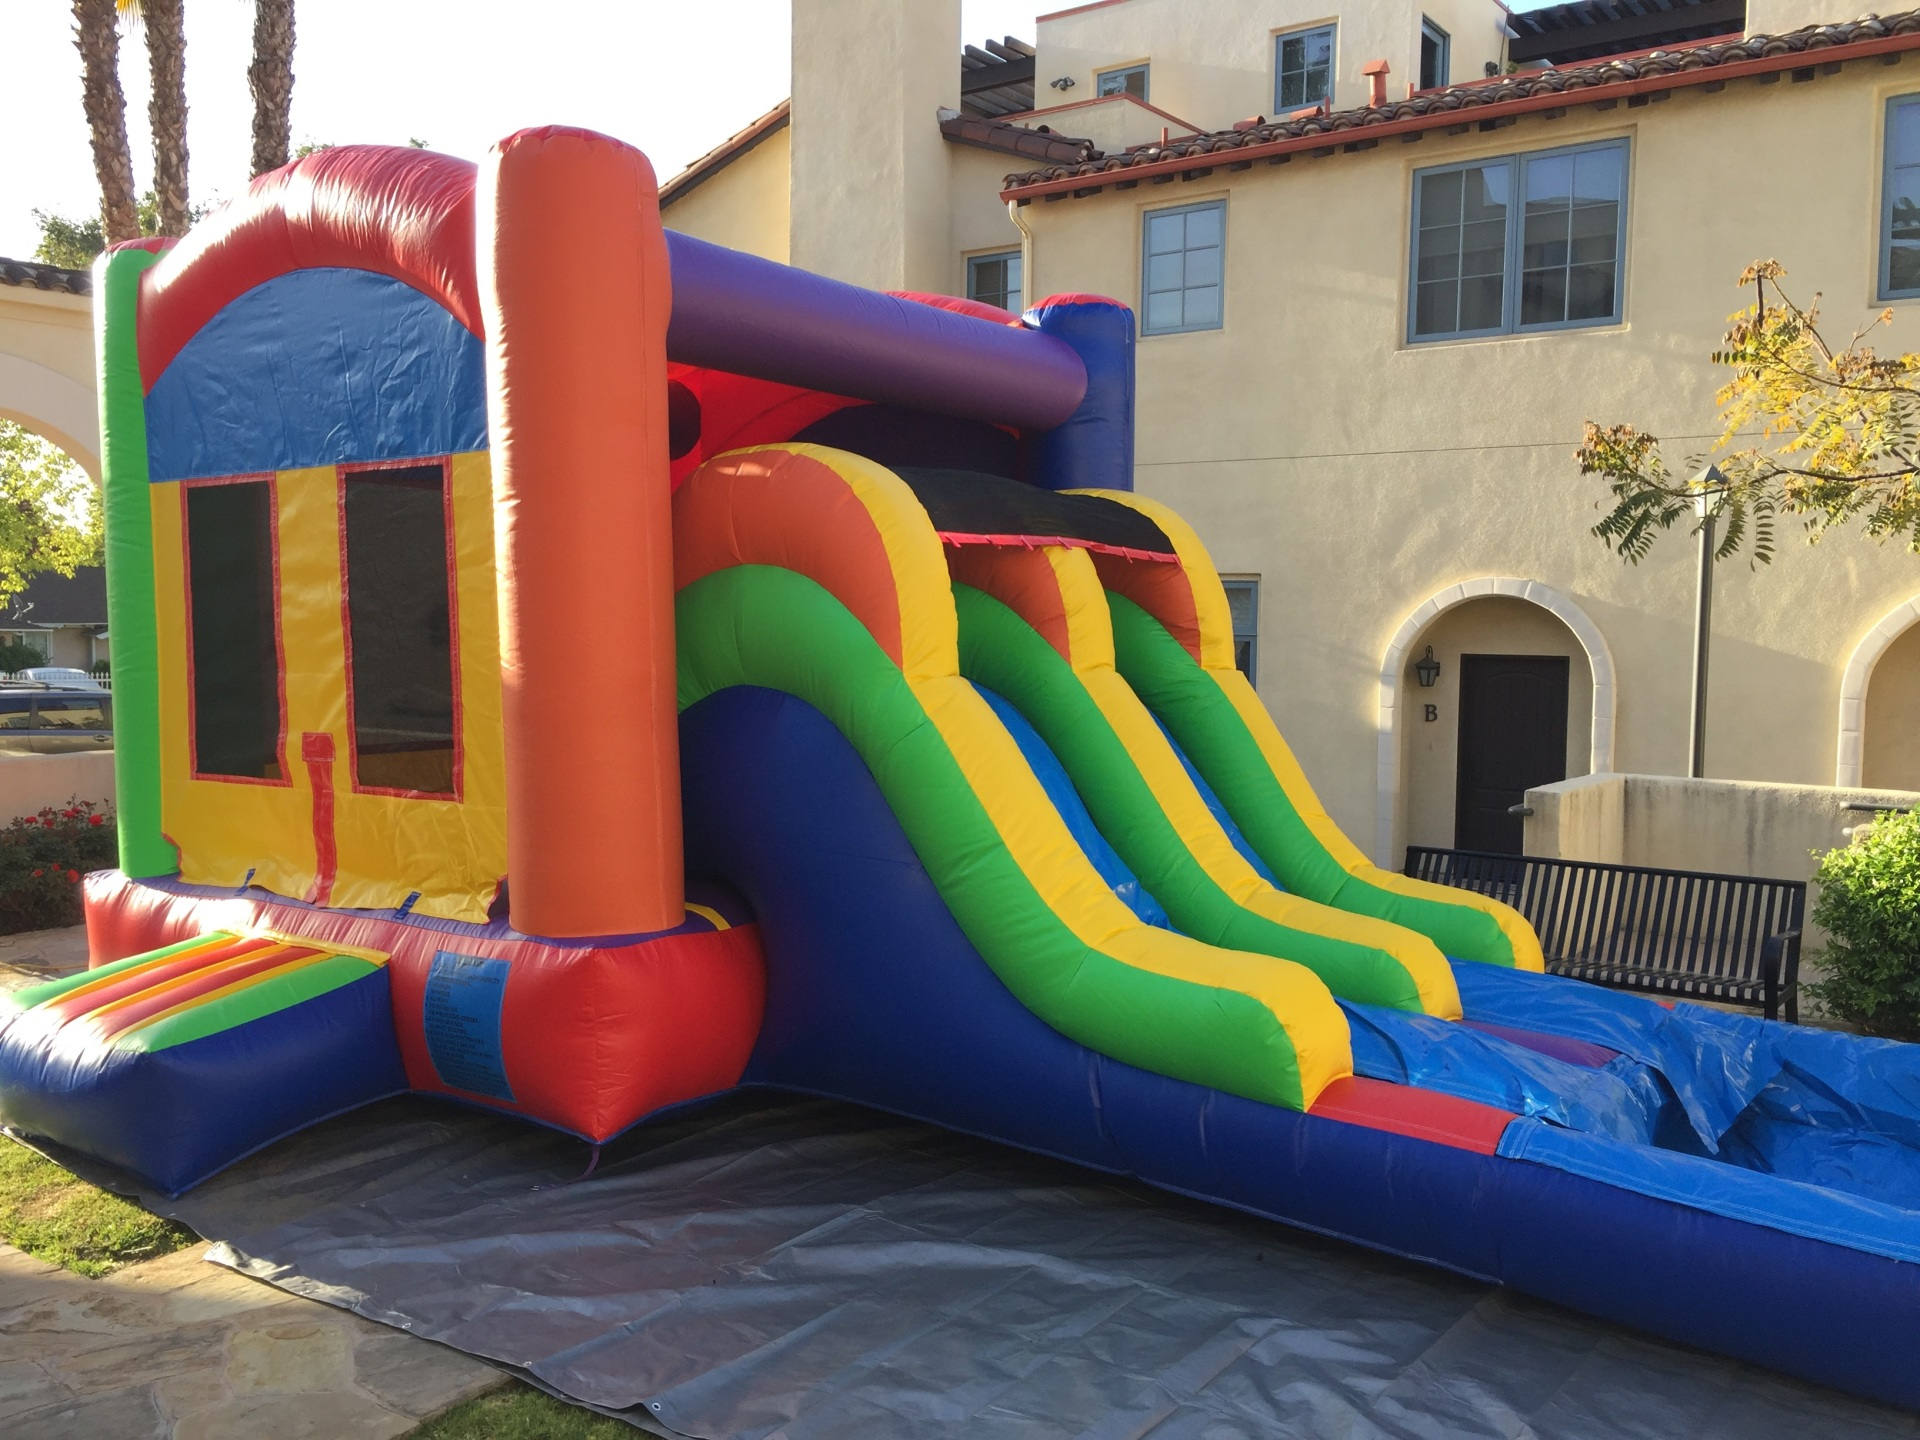 BIG JUMPING AREA, JUMPER WITH ALSIE, DOUBLE WATERSLIDE, COMBO JUMPER, DOUBLE SLIDE COMBO JUMPER, JUMPER WITH SLIDE, WATERSLIDE WITH JUMPER